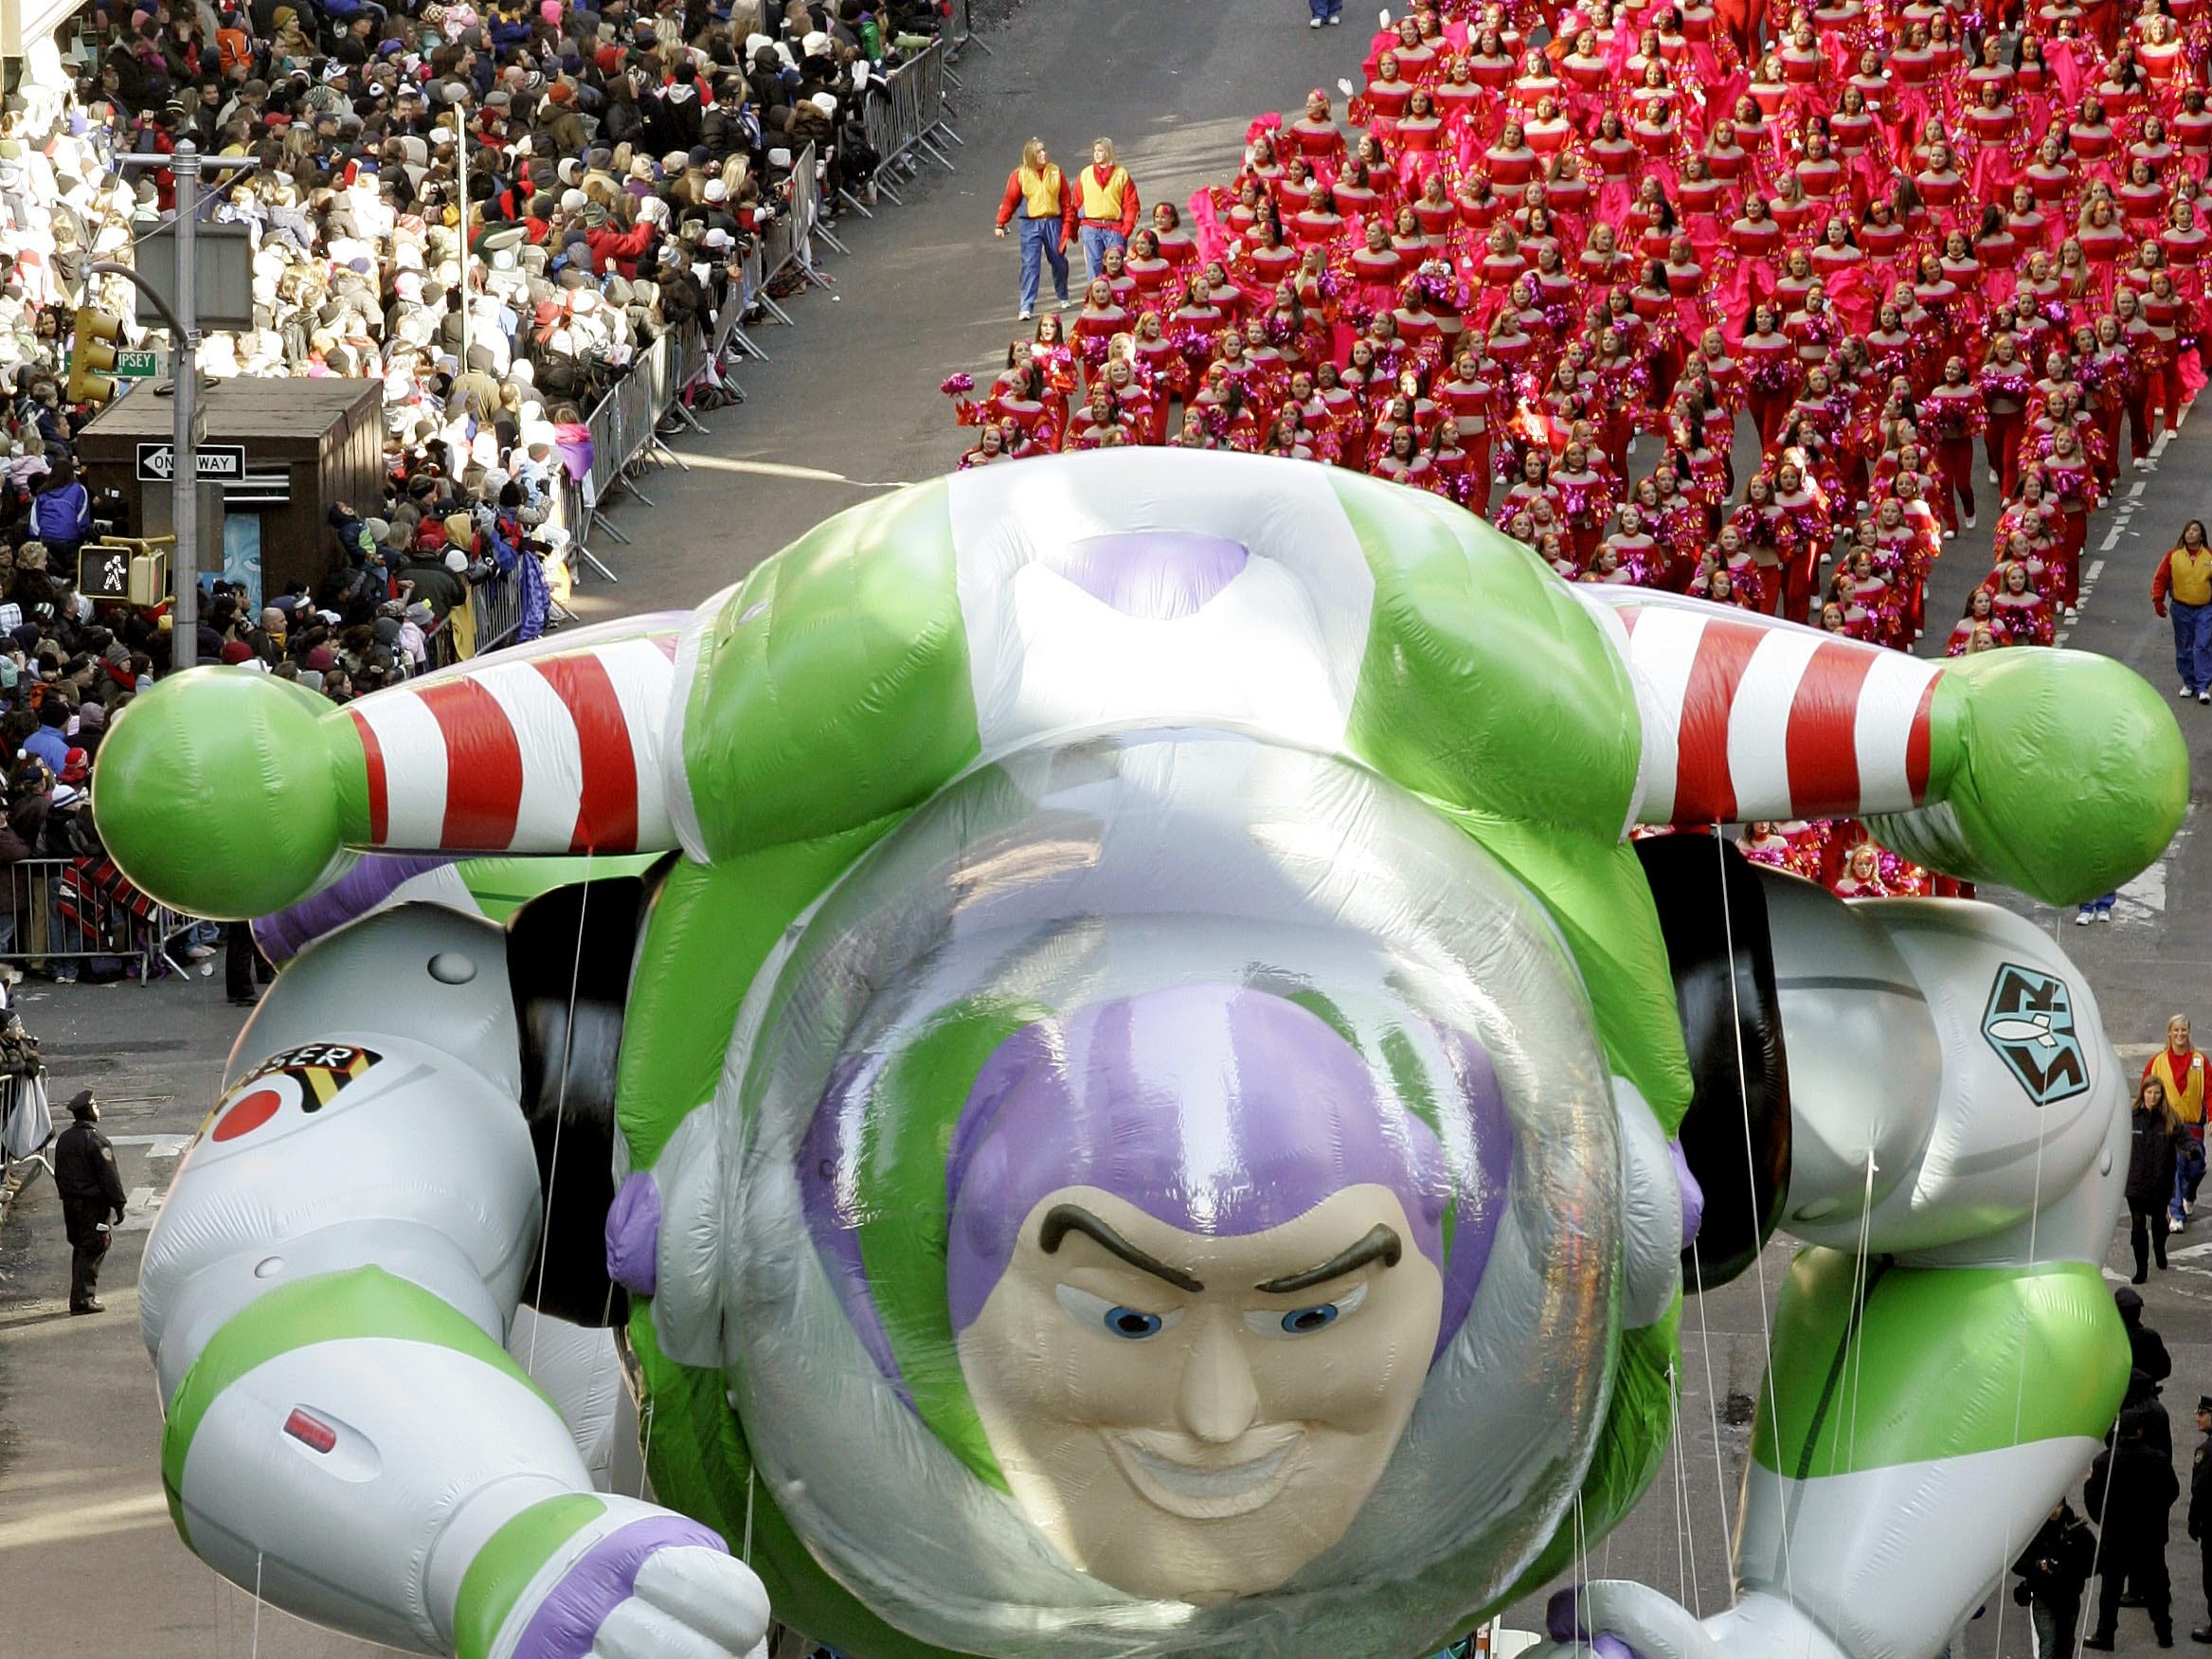 The Buzz Lightyear balloon floats down Broadway during the Macy's Thanksgiving Day parade in New York, Thursday, Nov. 27, 2008. (AP Photo/Jeff Christensen)